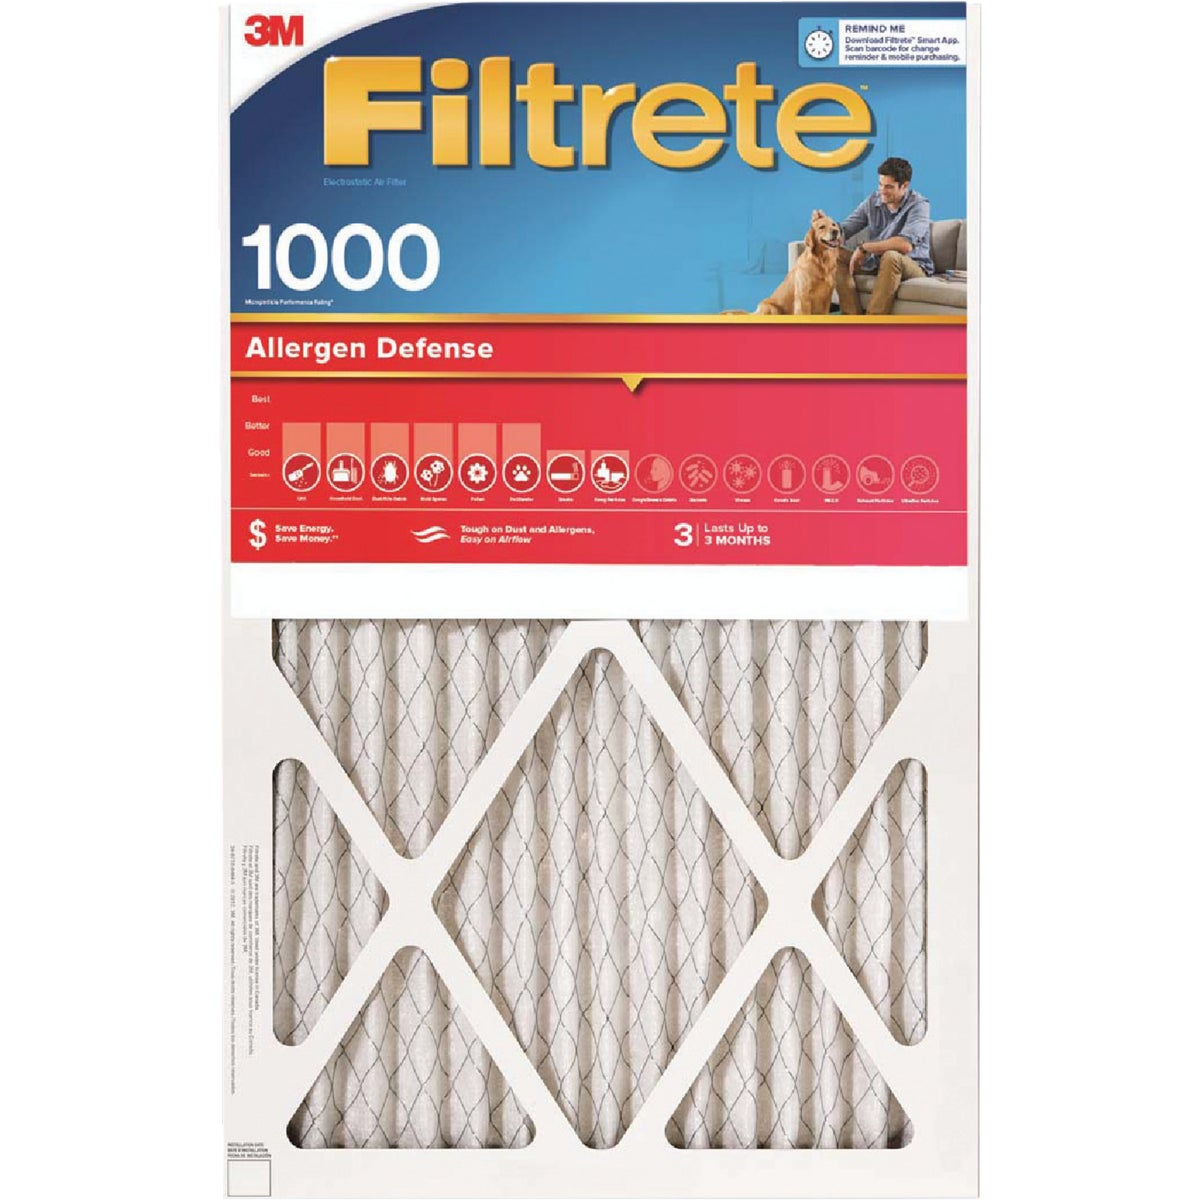 3M Filtrete Allergen Defense Furnace Filter